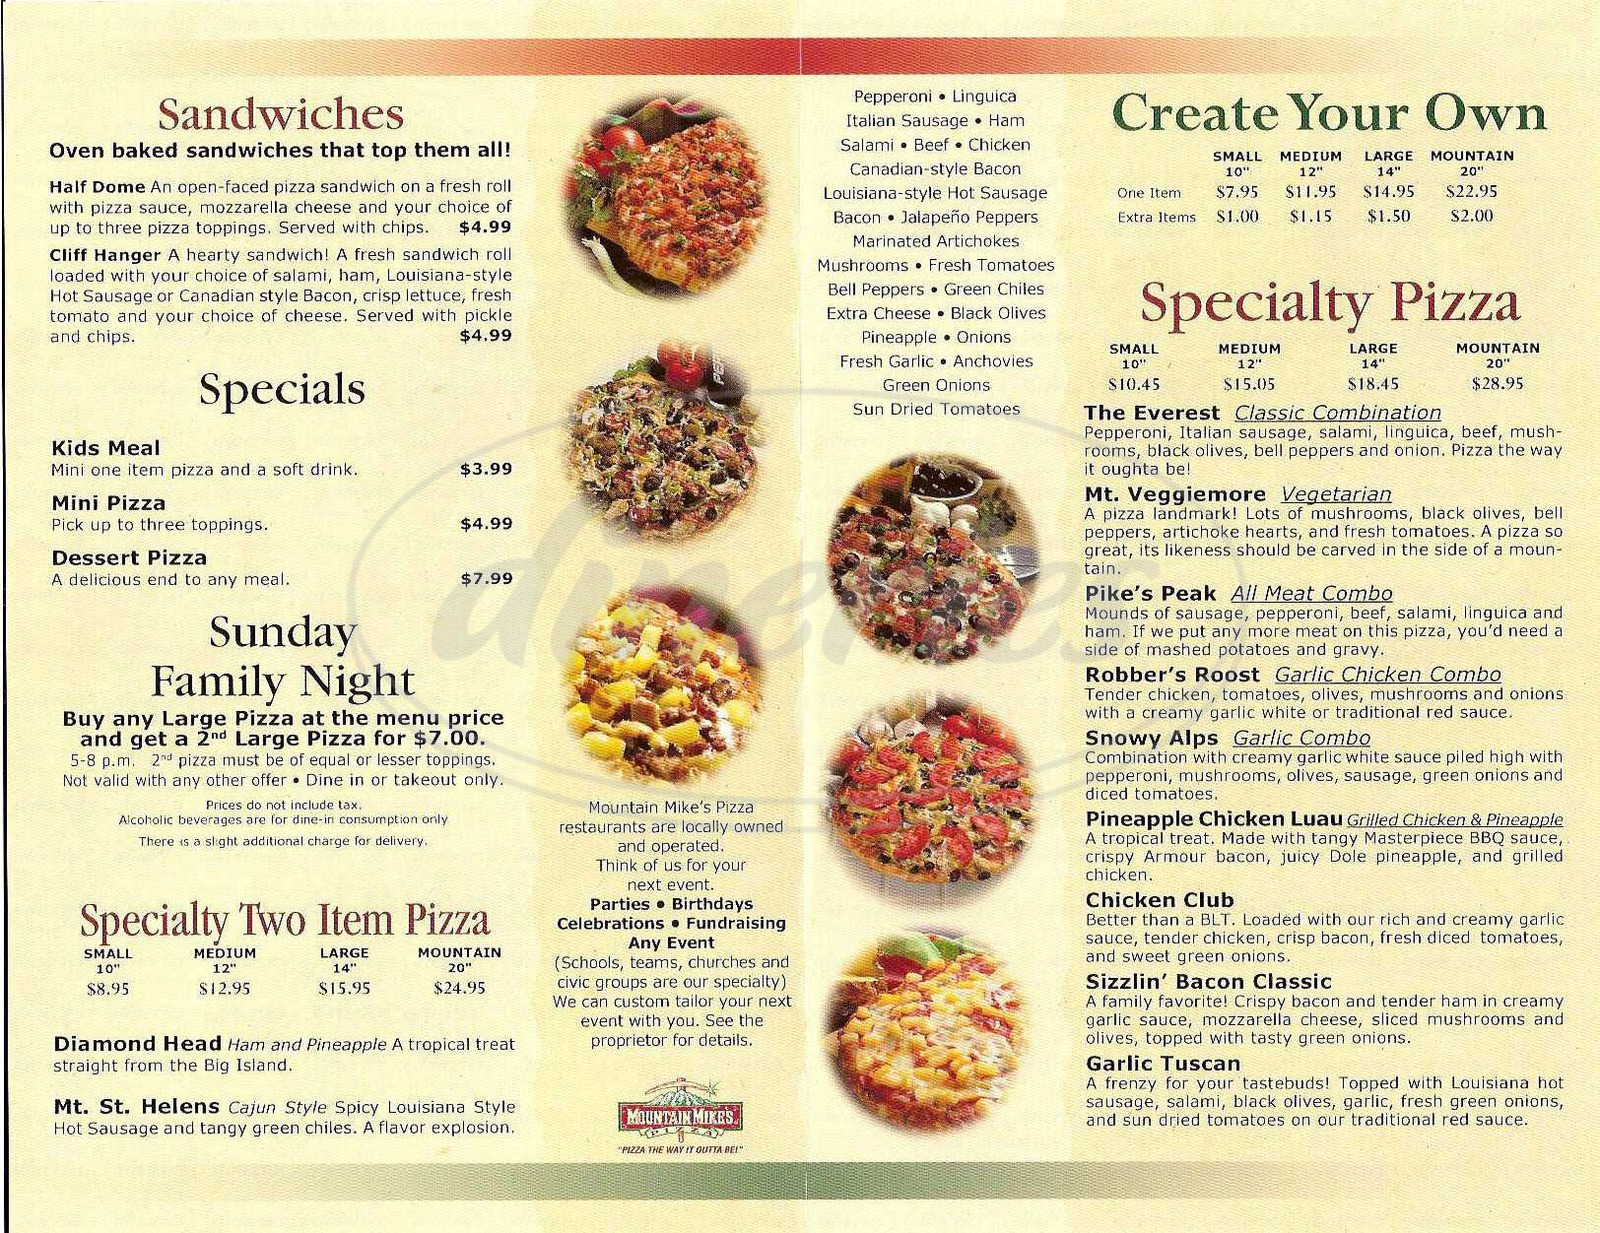 menu for Mountain Mike's